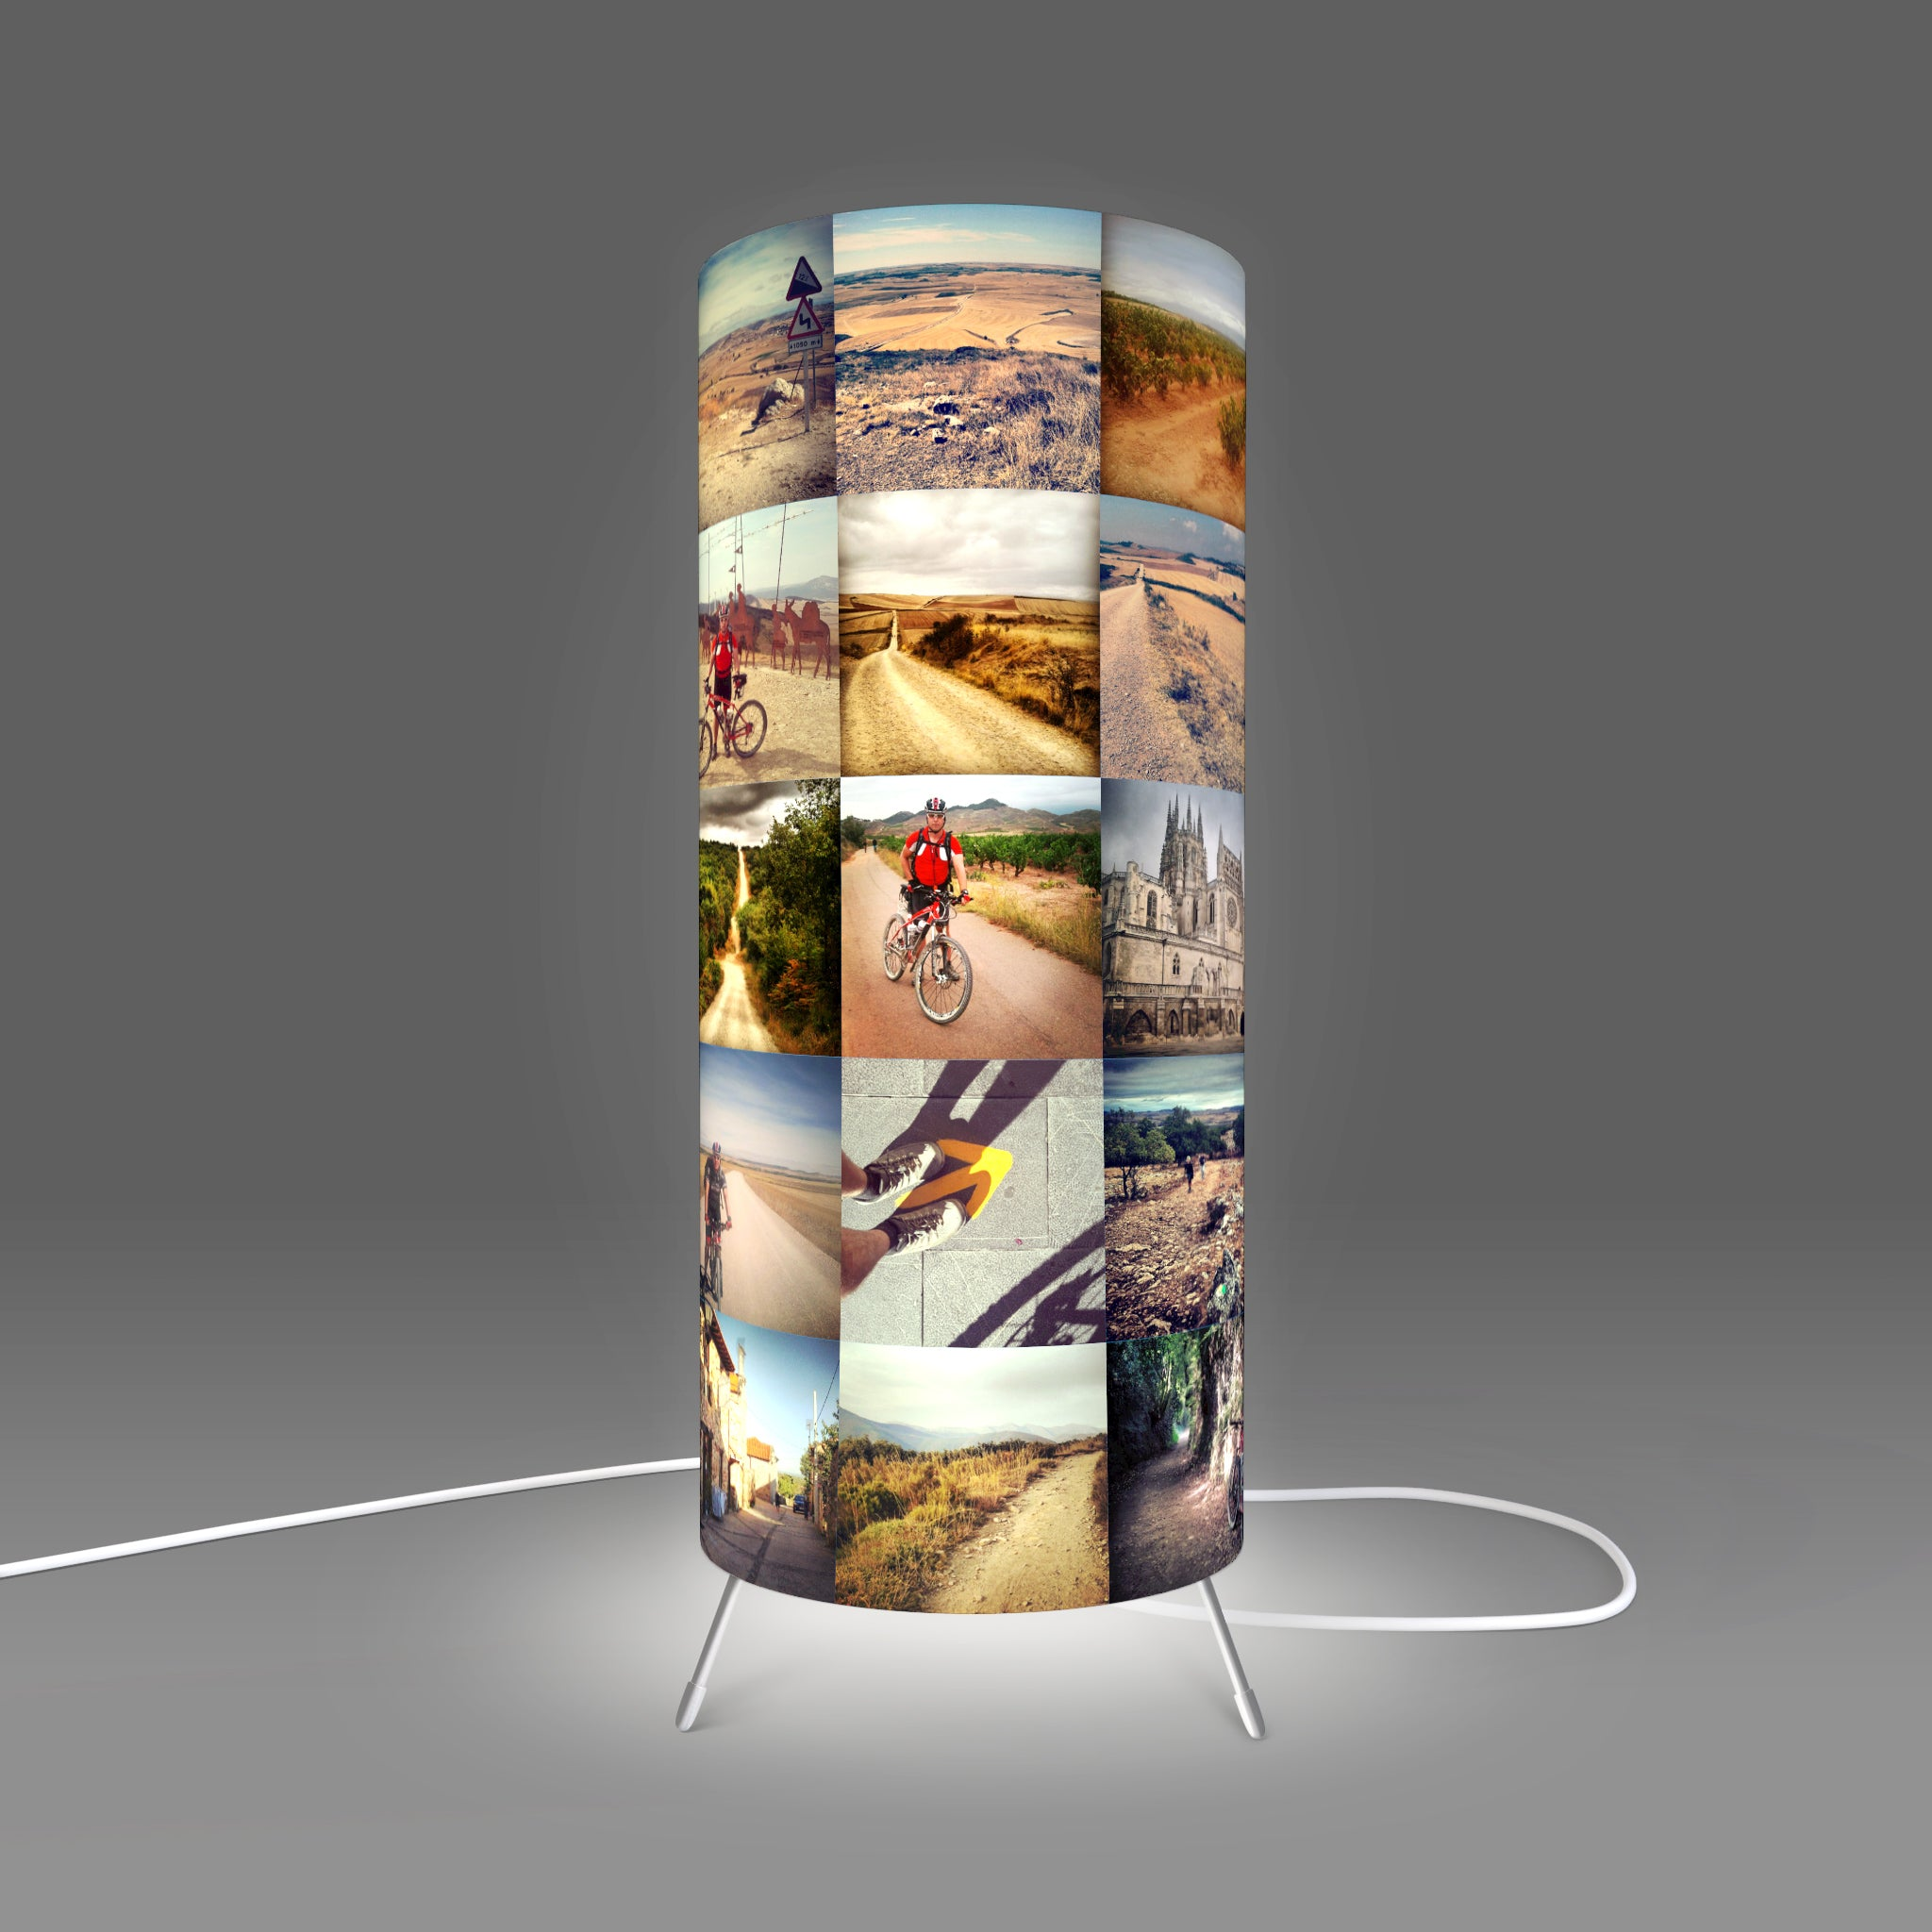 Personalised Table Lamp with Instagram images designed by Fotbee